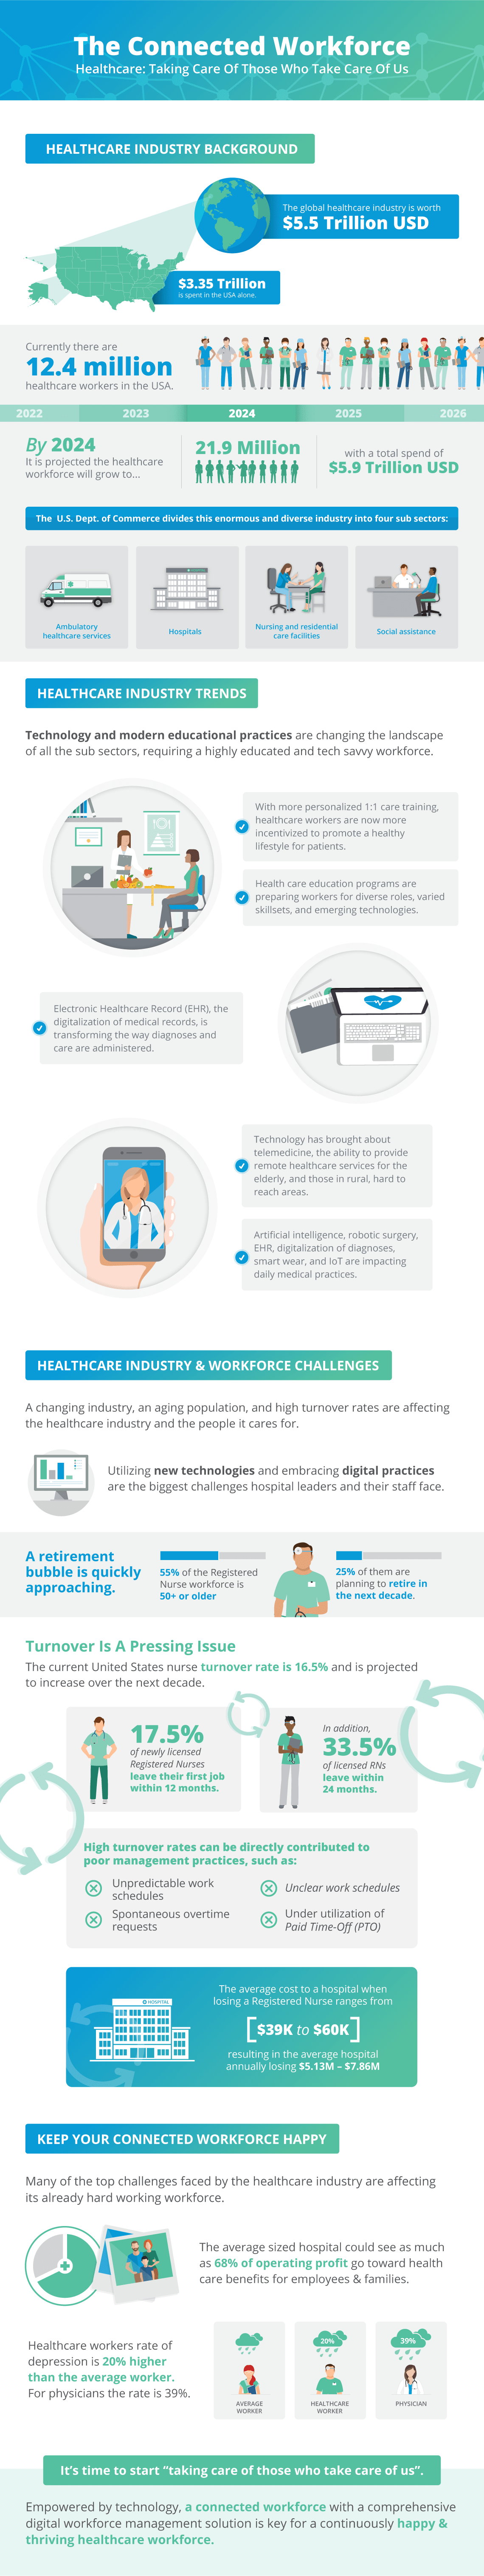 The Connected Workforce Healthcare